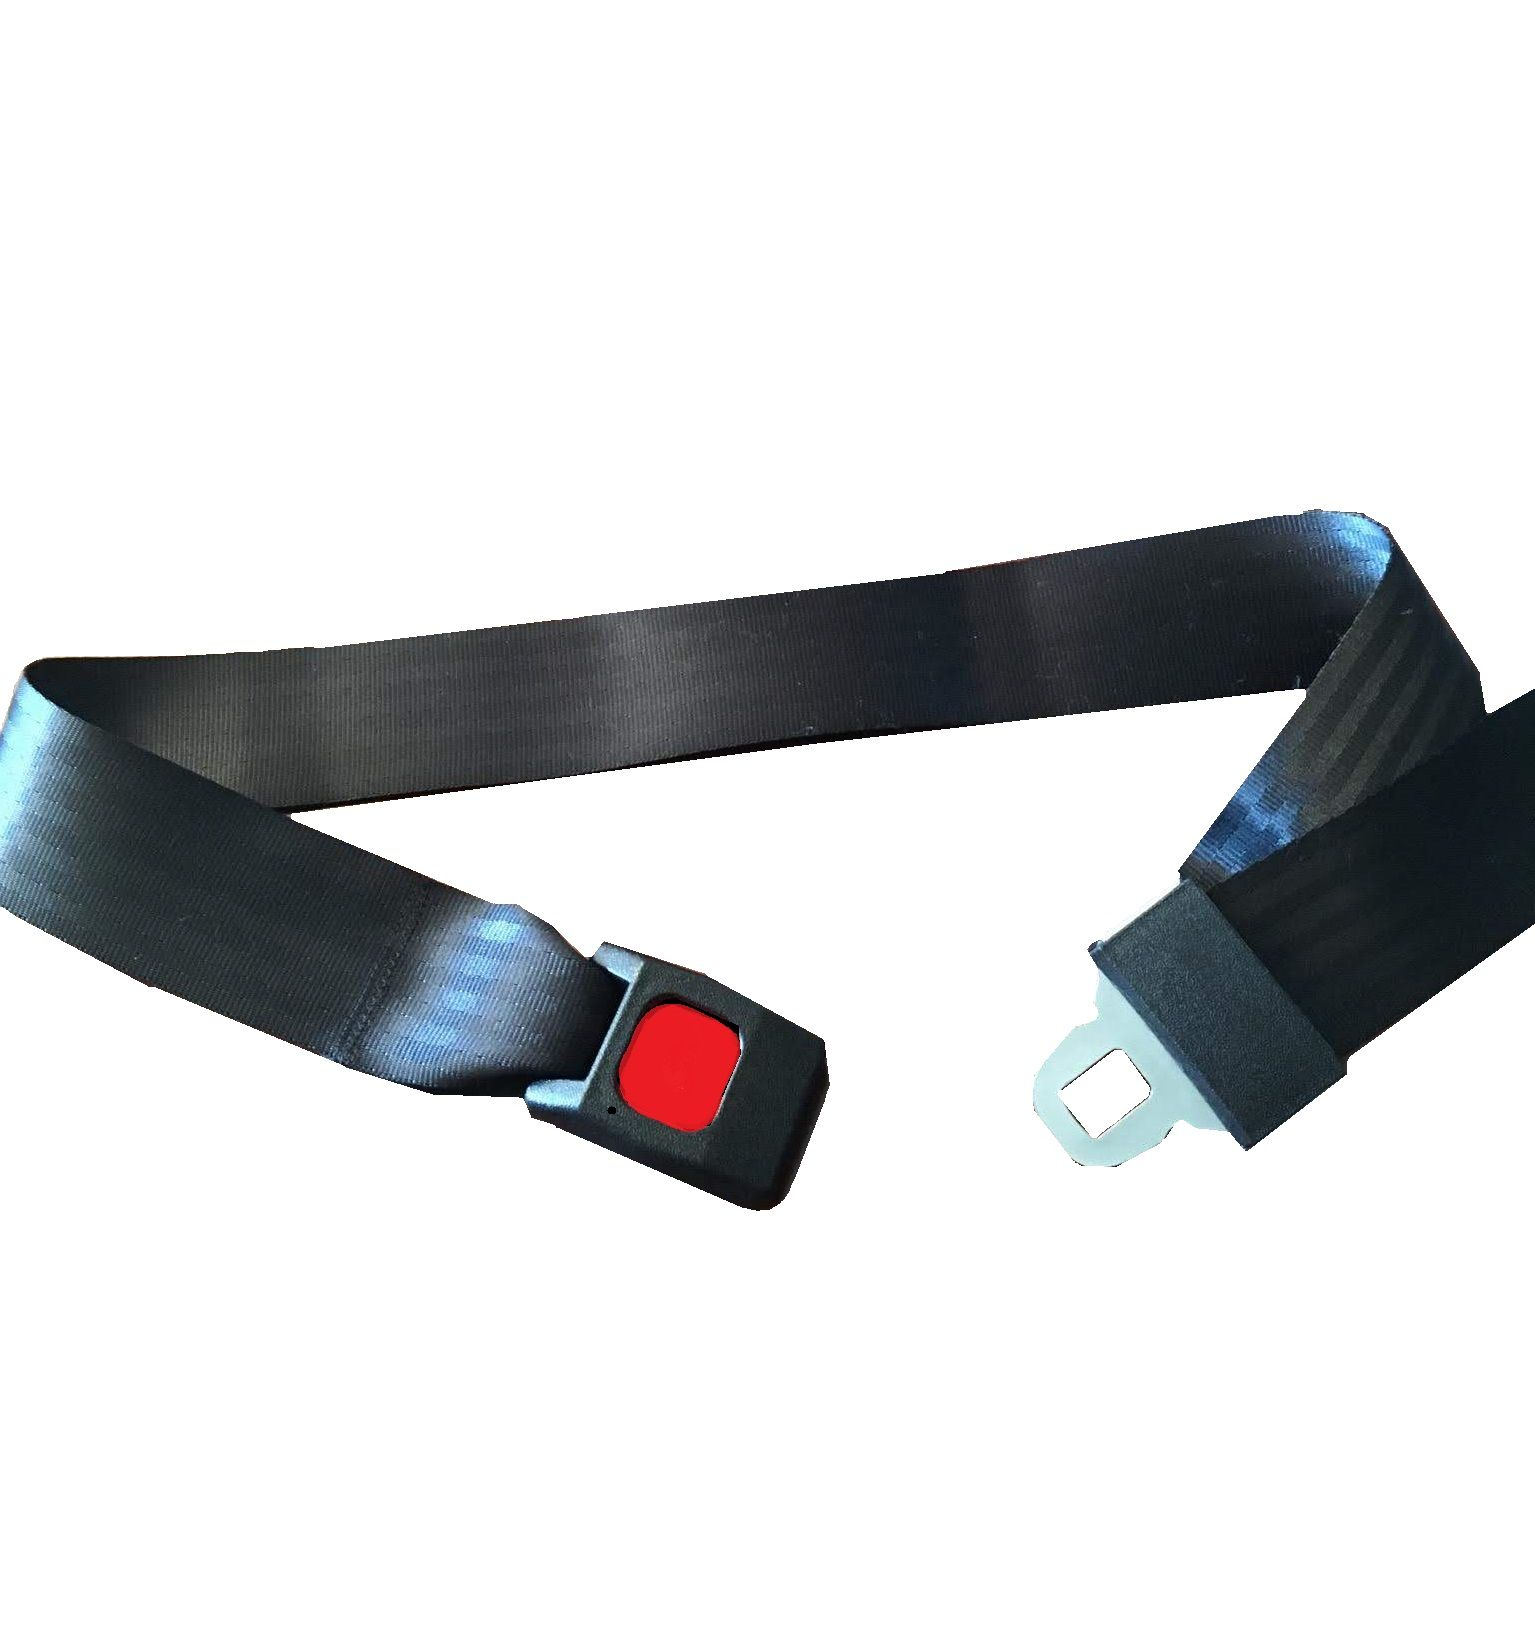 Seatbelt Extension for Battery and Manual Stair Chairs